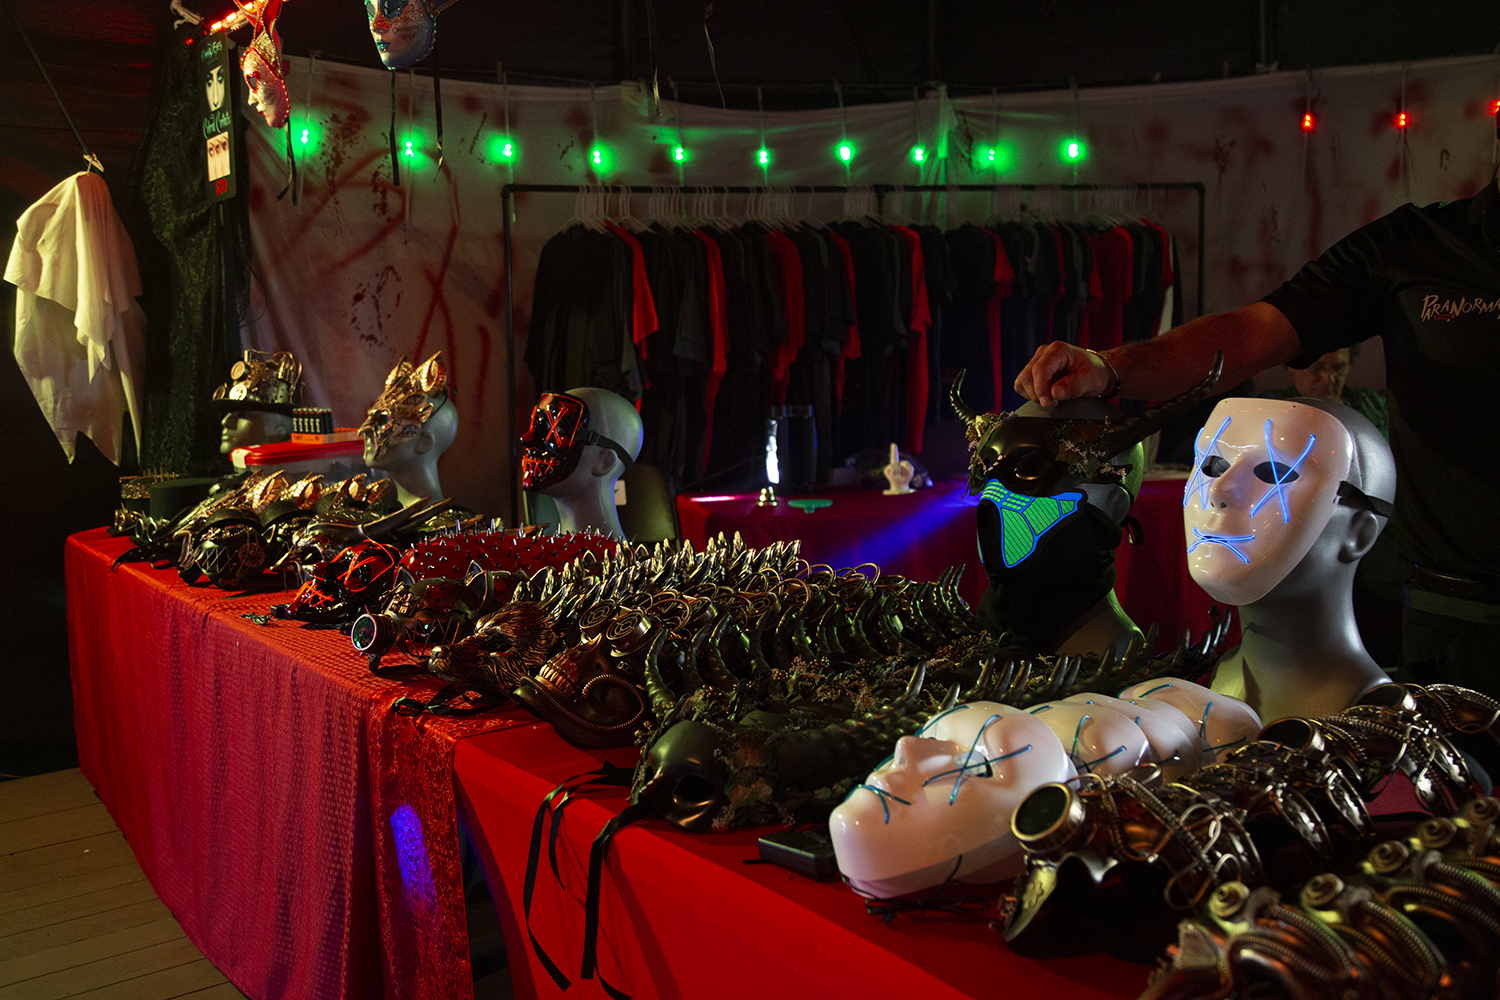 Horror+themed+masks+were+sold+at+the+Paranormal+Cirque.